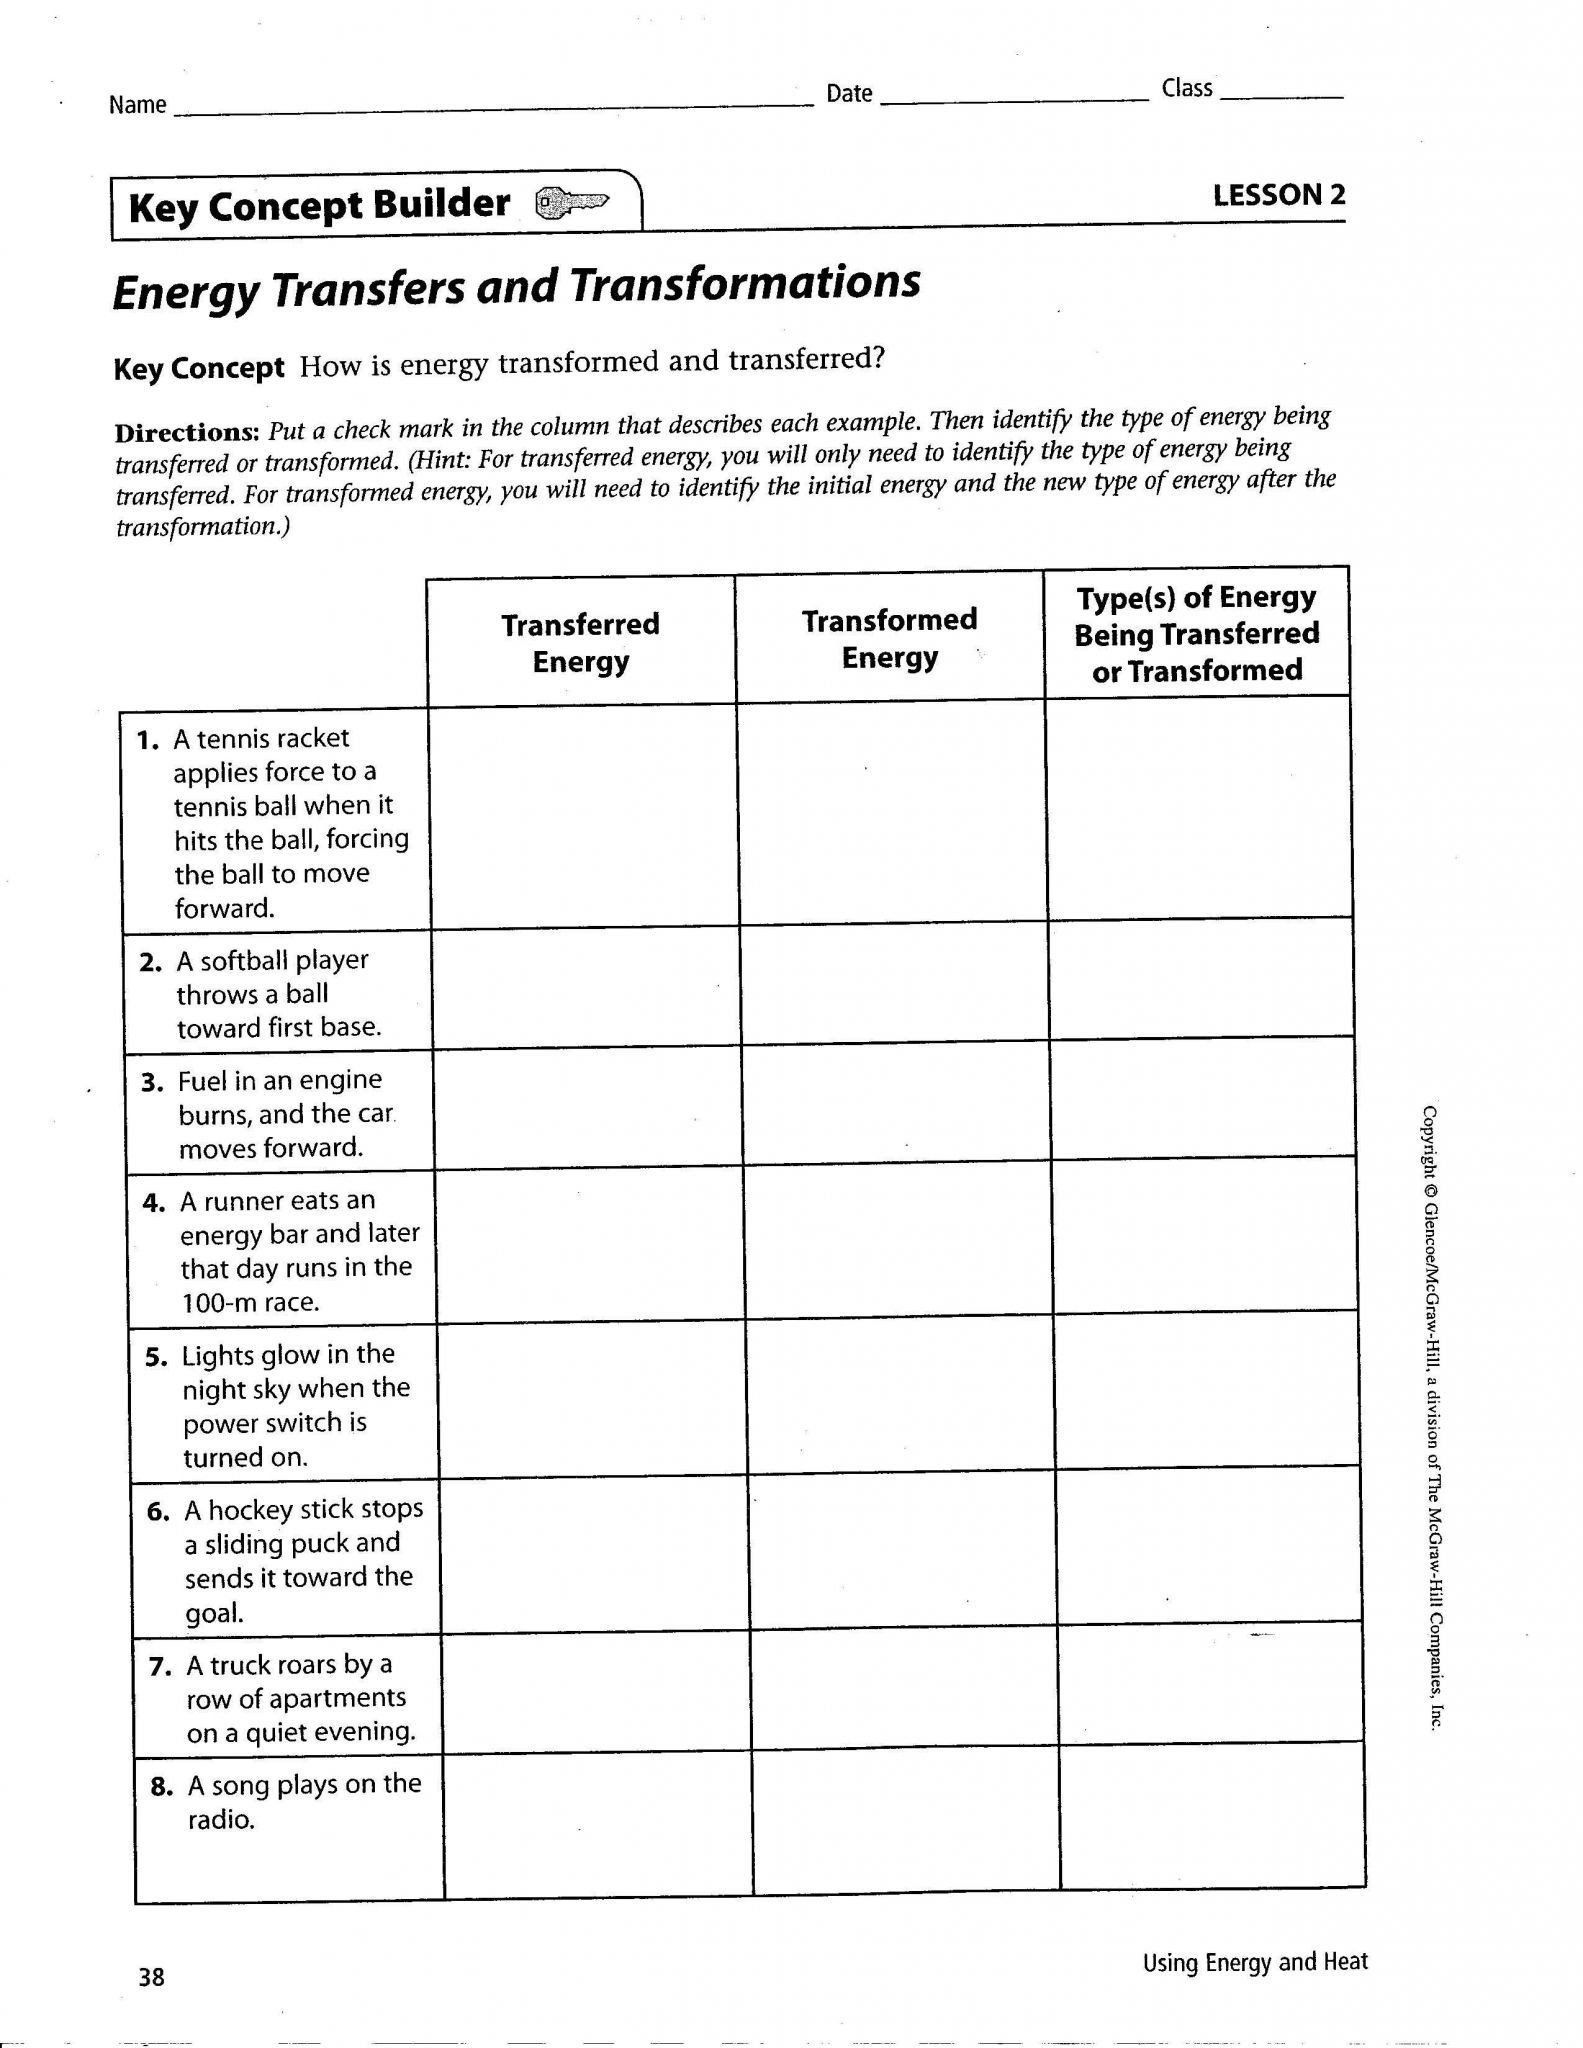 Energy Transformation Worksheet Middle School Linear